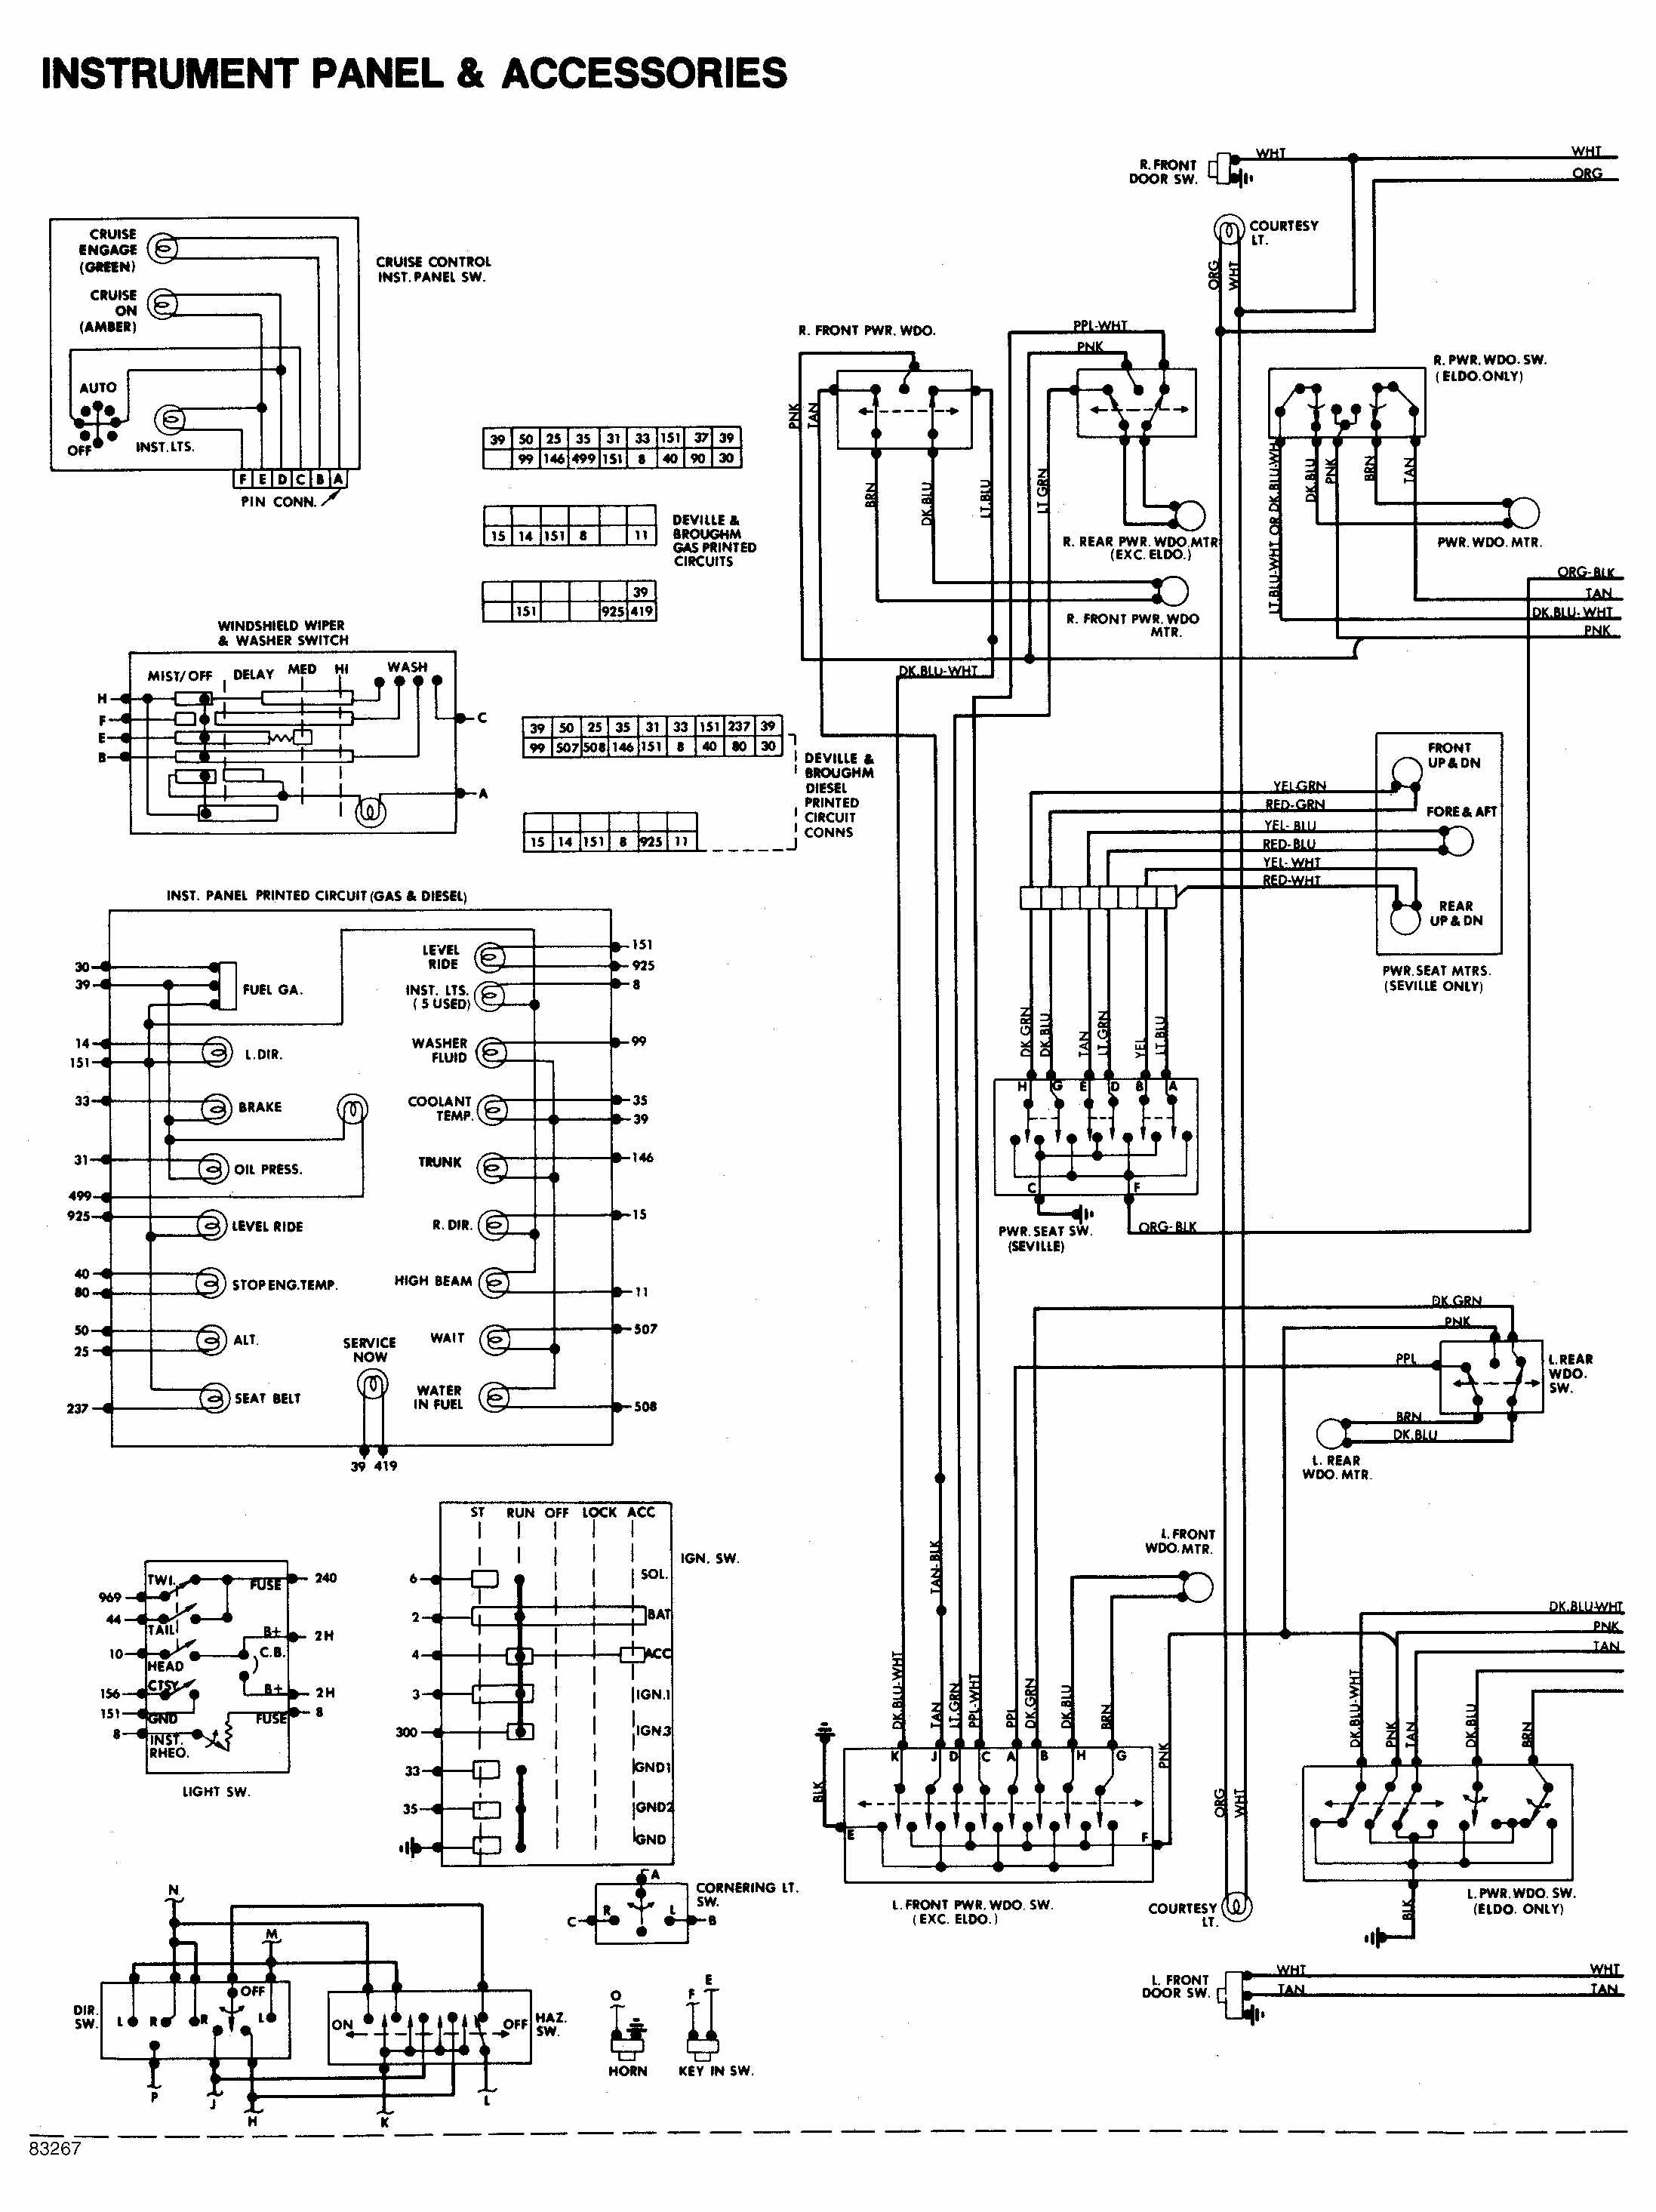 instrument panel and accessories wiring diagram of 1984 cadillac deville cadillac wiring harness ram truck wiring harness \u2022 wiring diagrams 1999 cadillac deville engine wiring harness at edmiracle.co